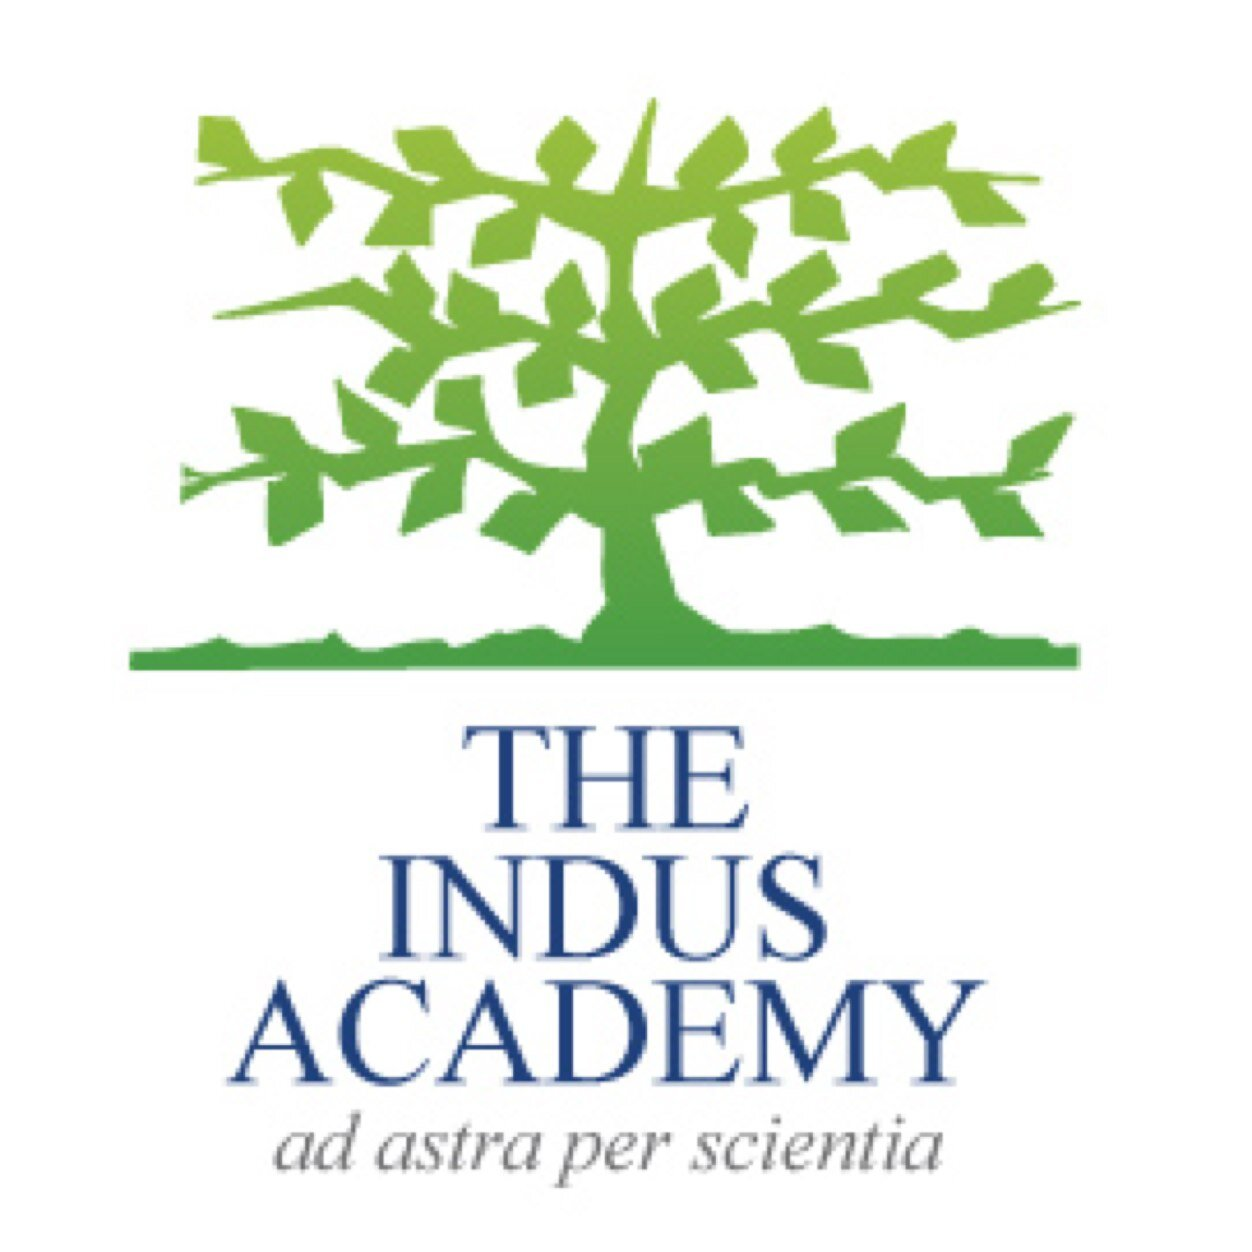 The Indus Academy